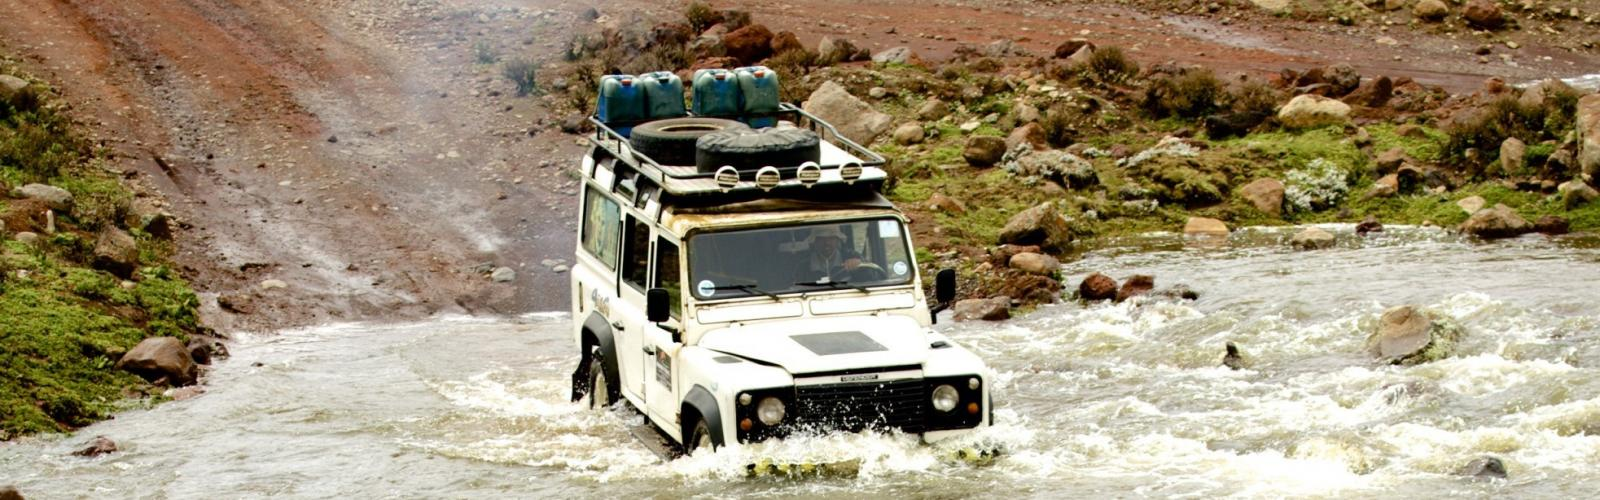 Photo of Adventure in Ethiopia